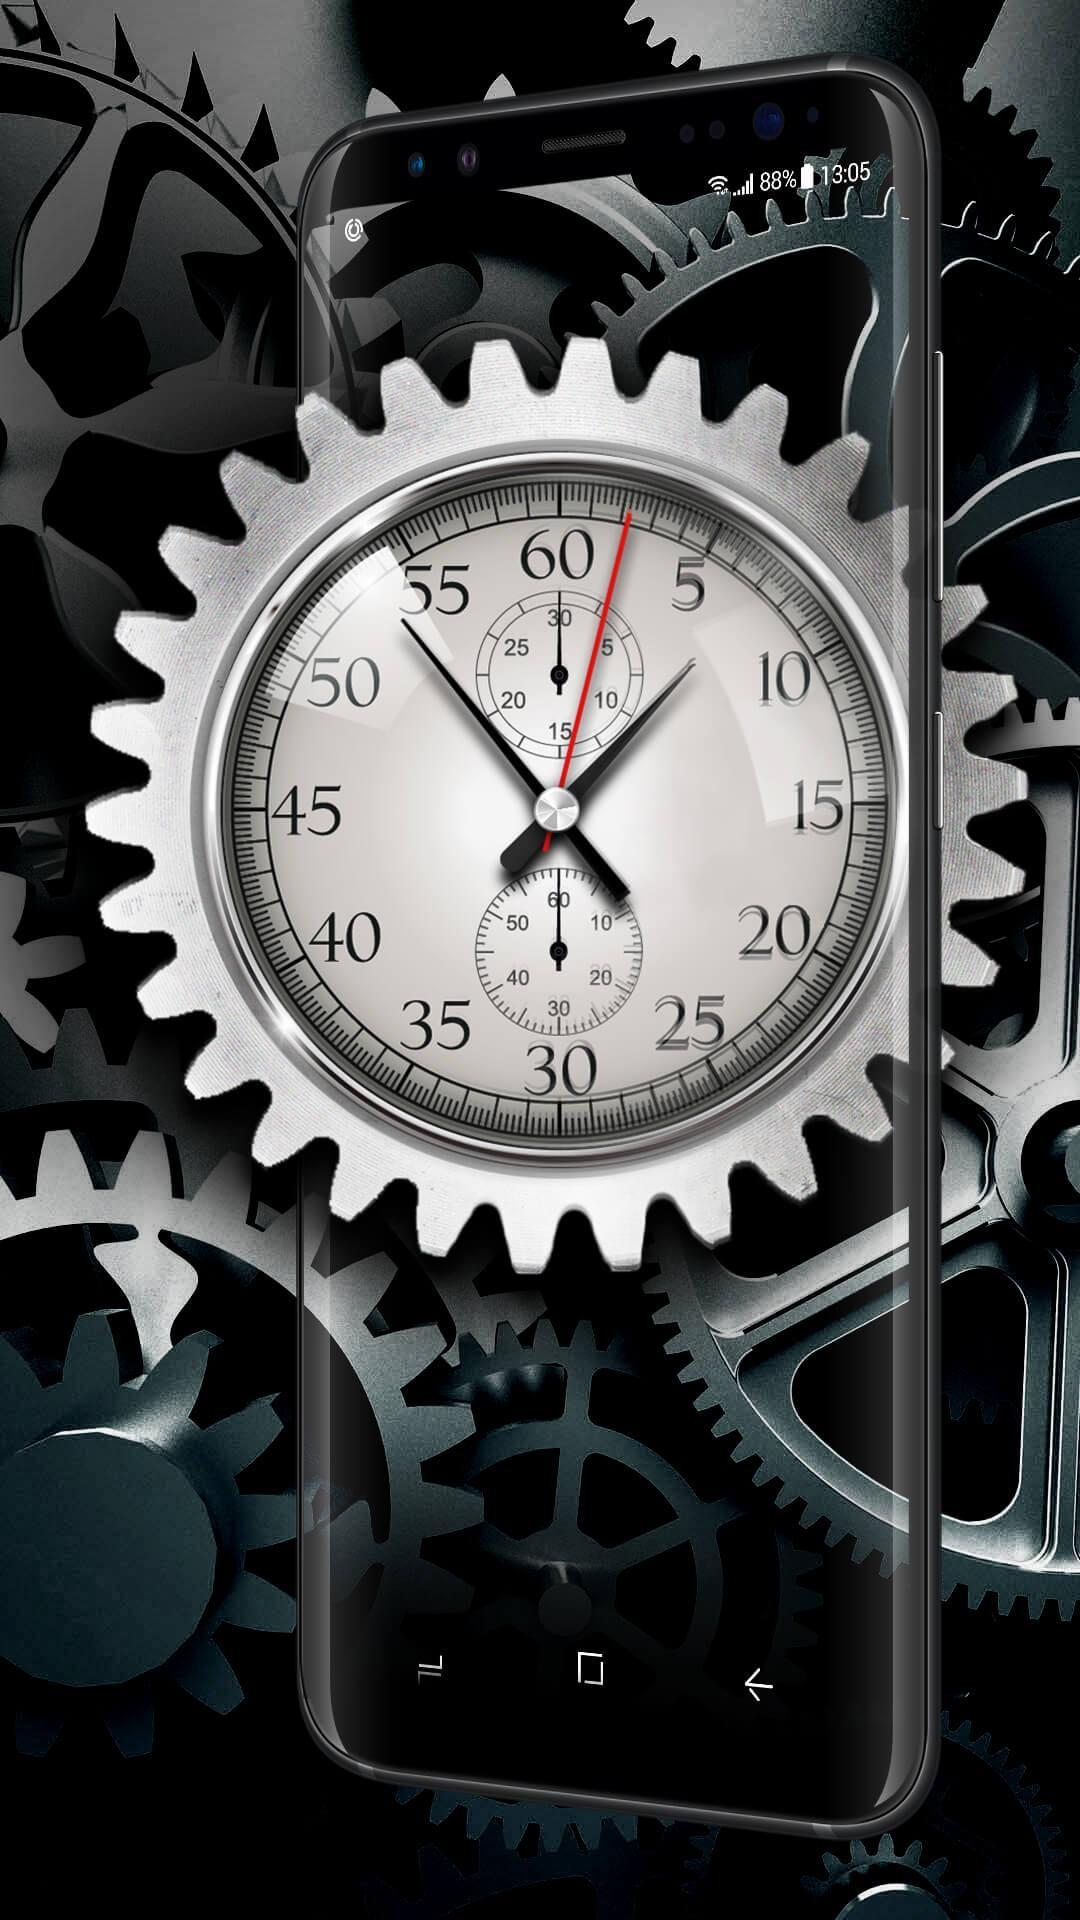 Analog Clock Live Wallpaper for Free for Android - APK ...